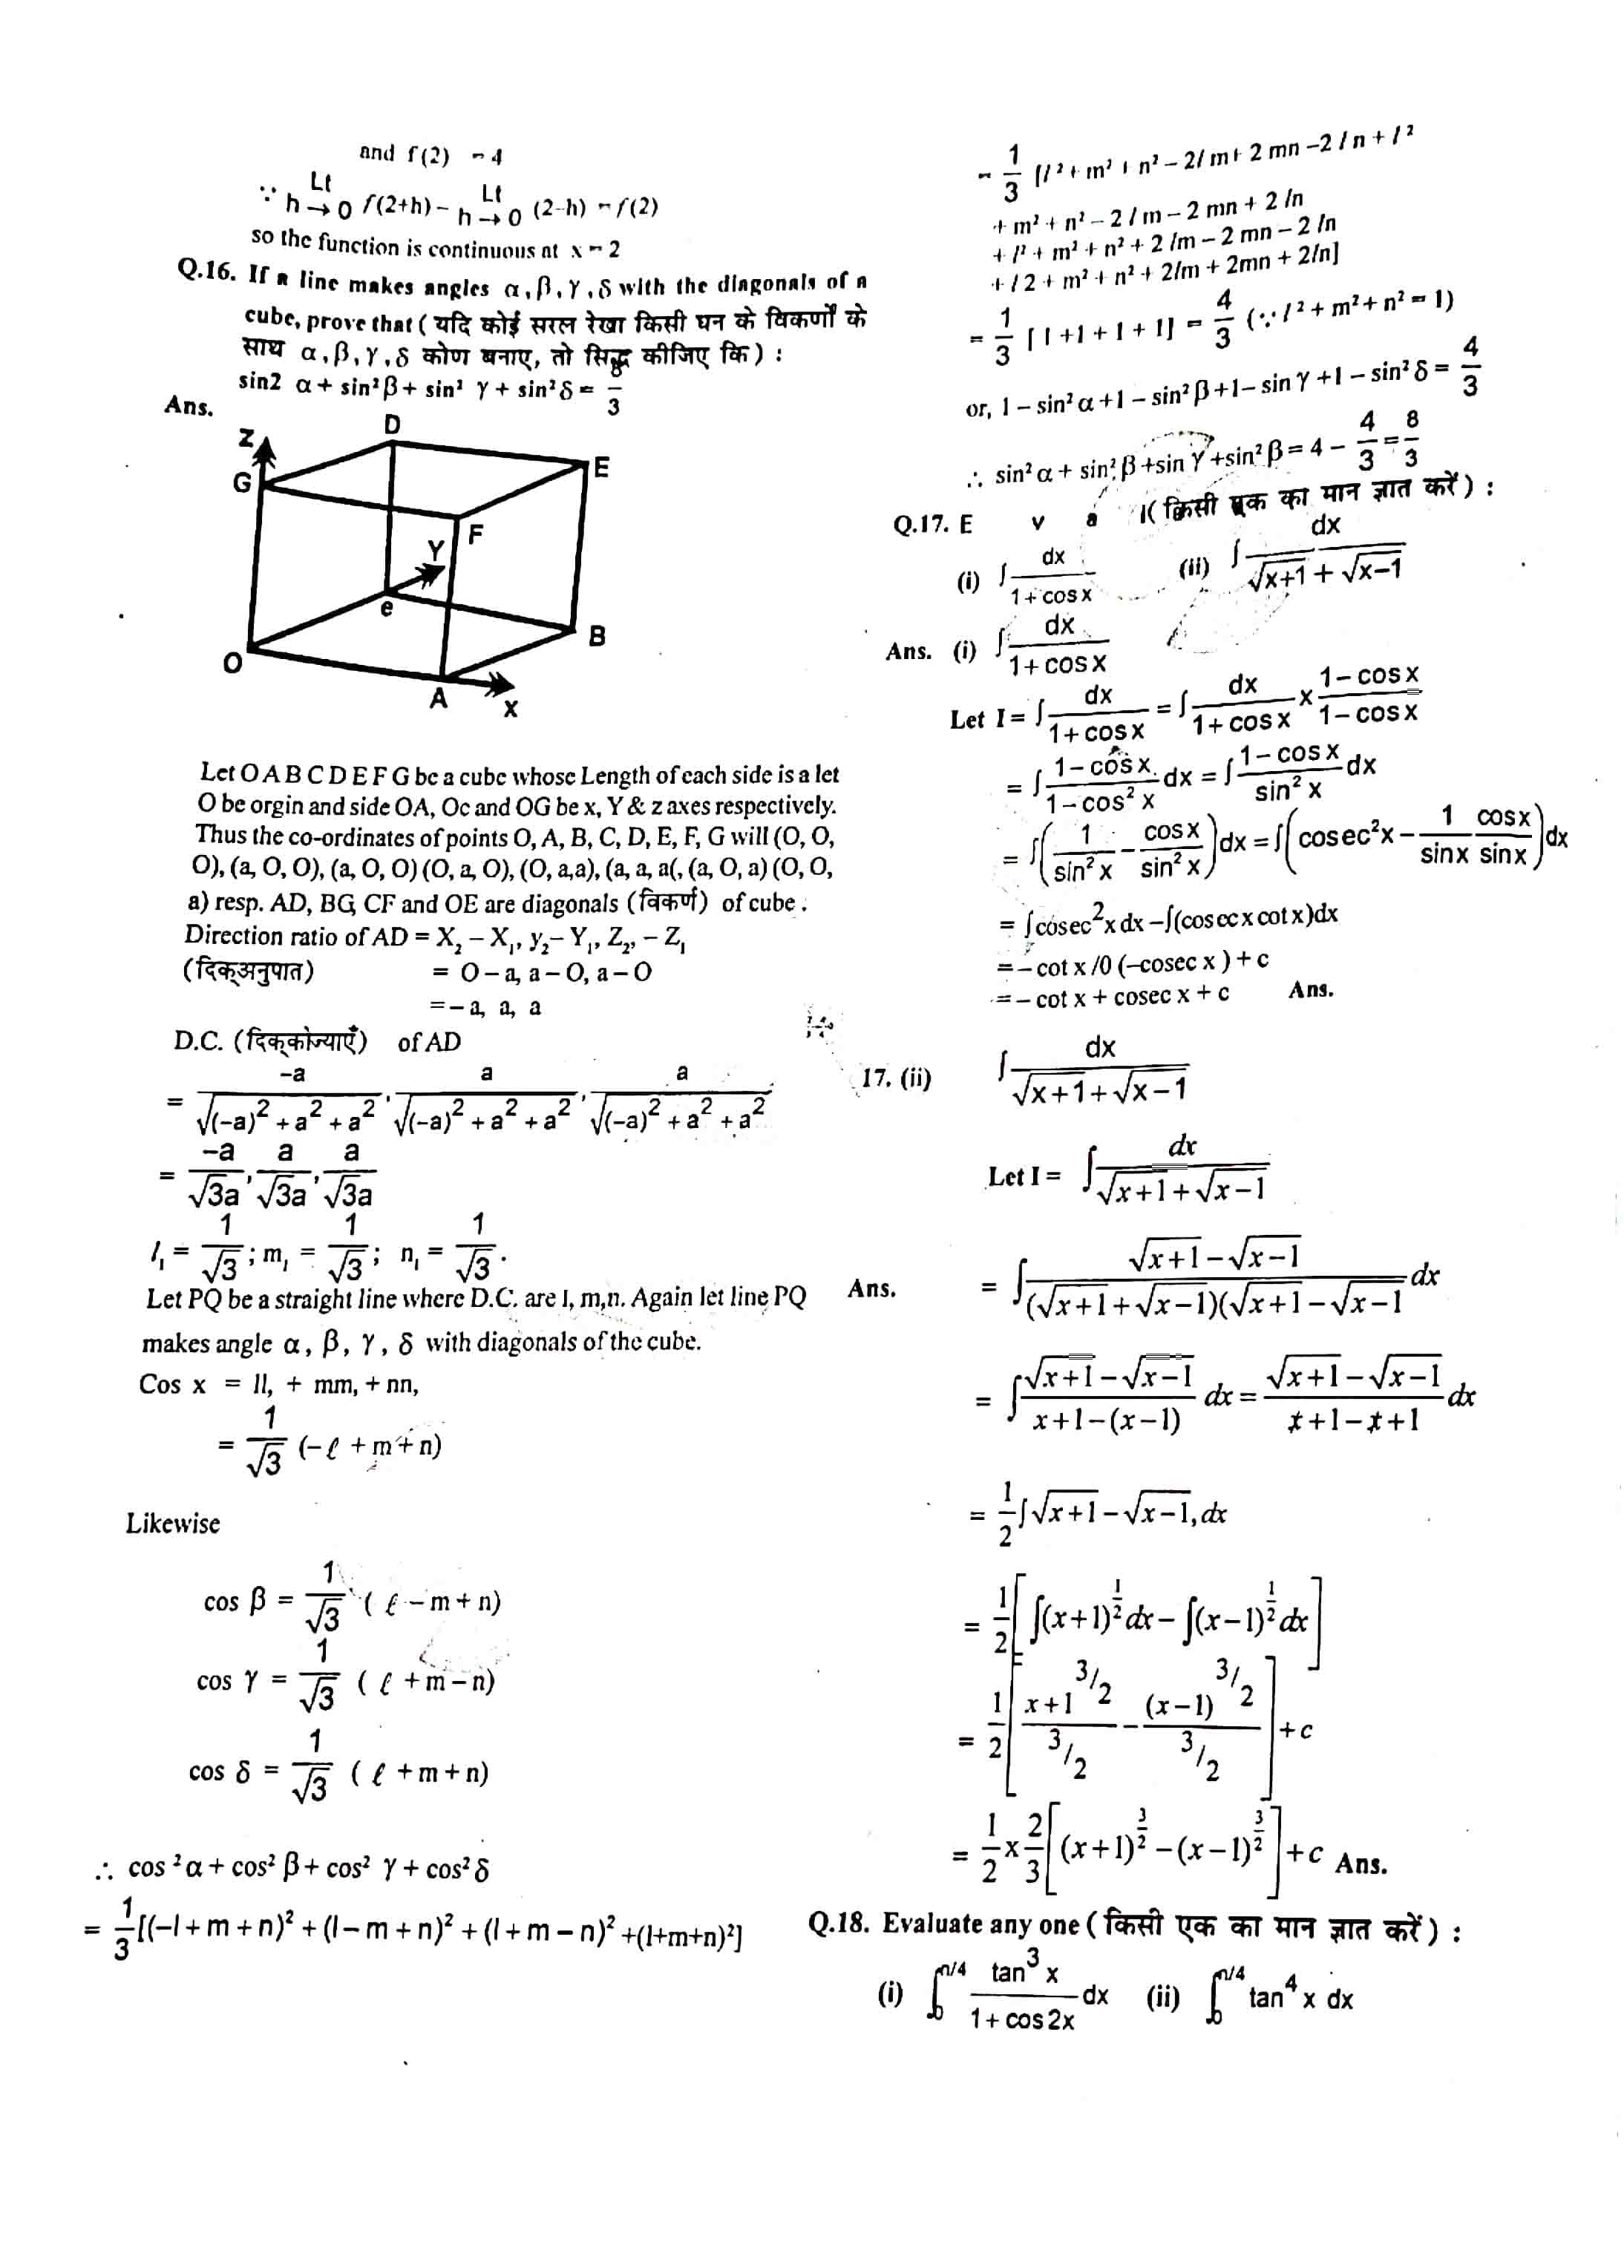 JAC Class 12 math 2012 Question Paper 03